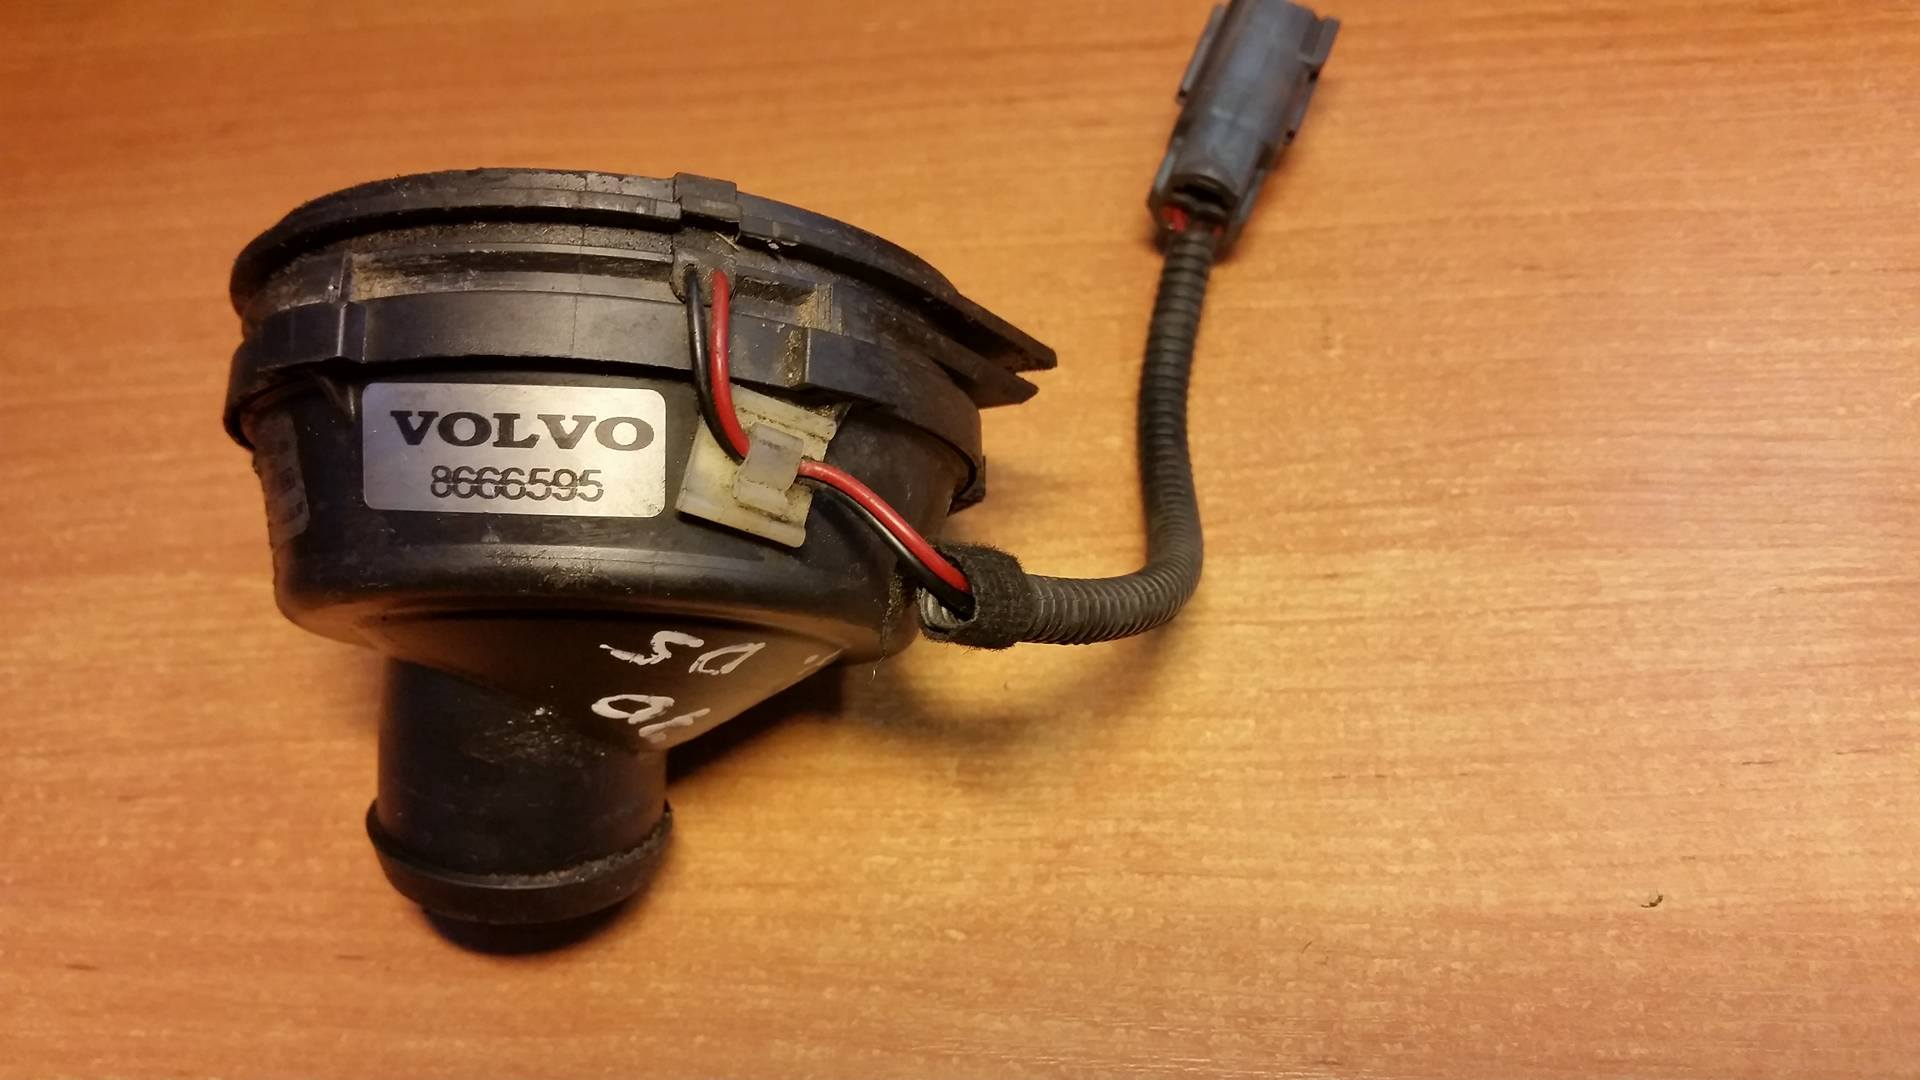 hight resolution of volvo v70 xc90 s60 s80 d5 00 05 ecu cooling fan 8666595 article 8666595